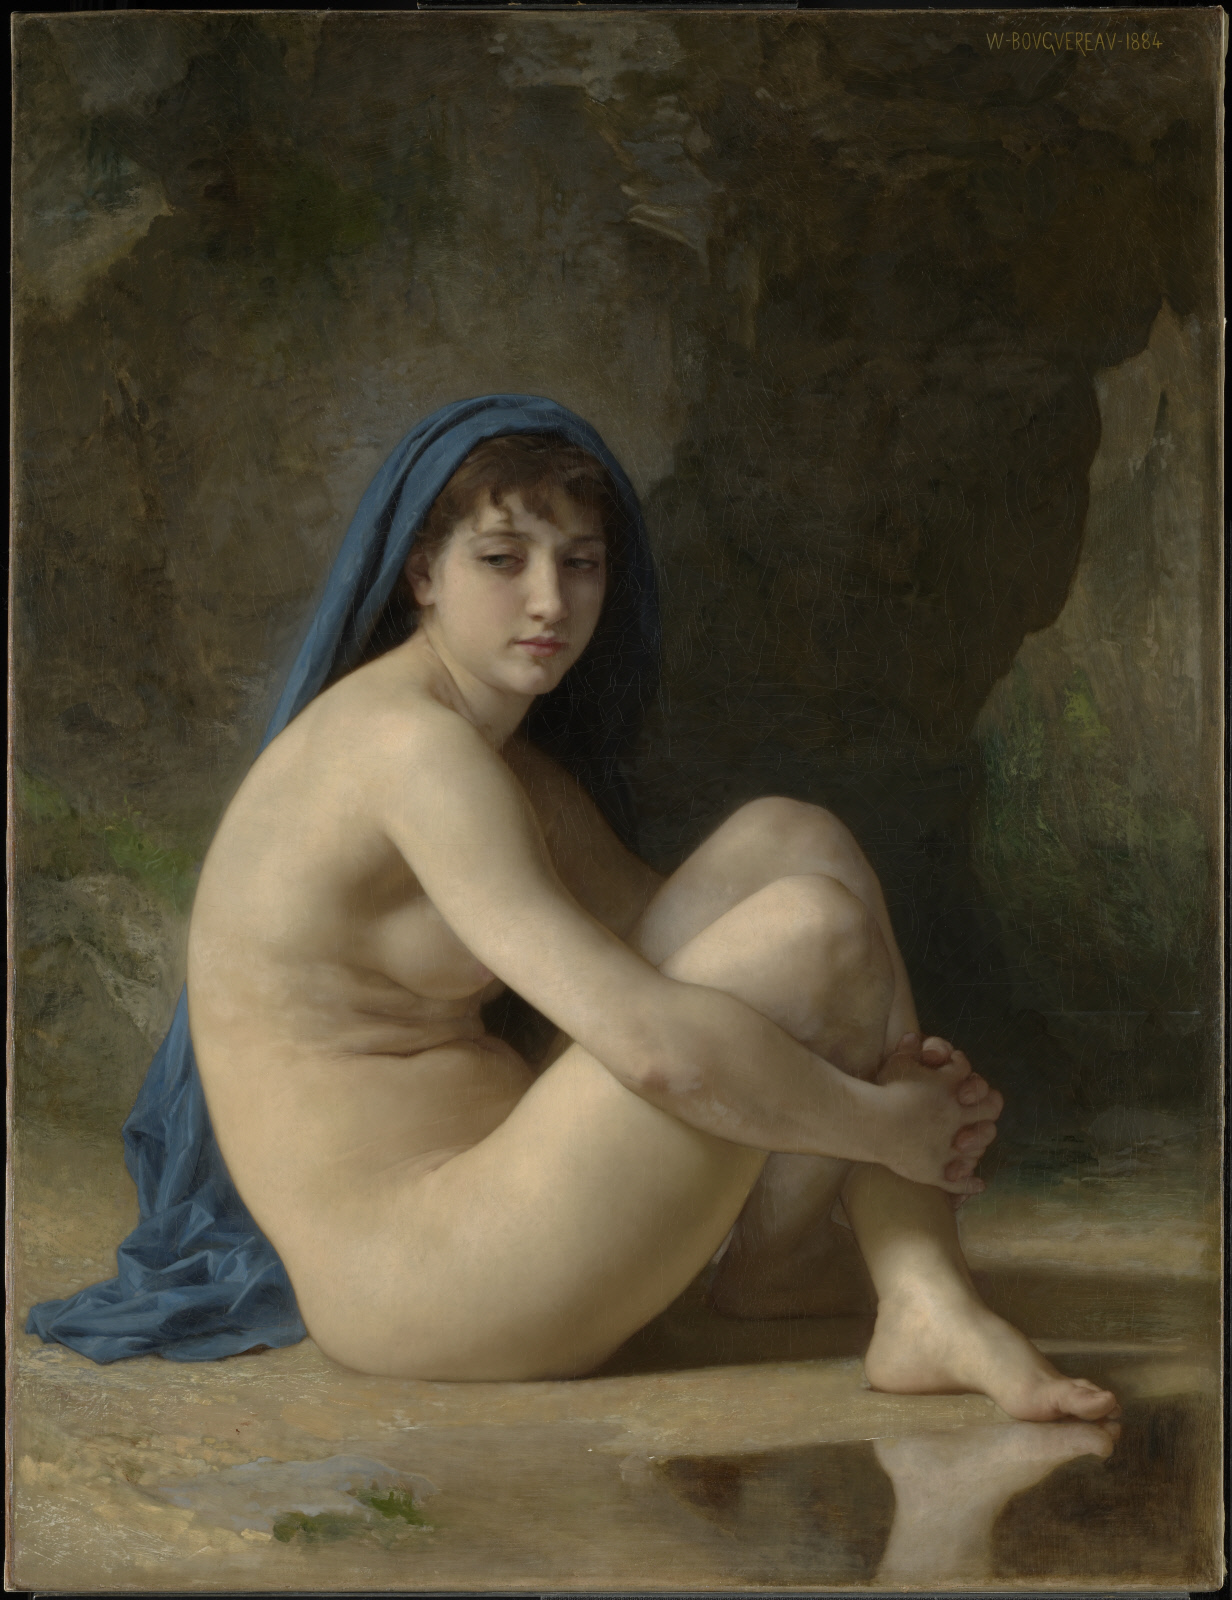 William Bouguereau028